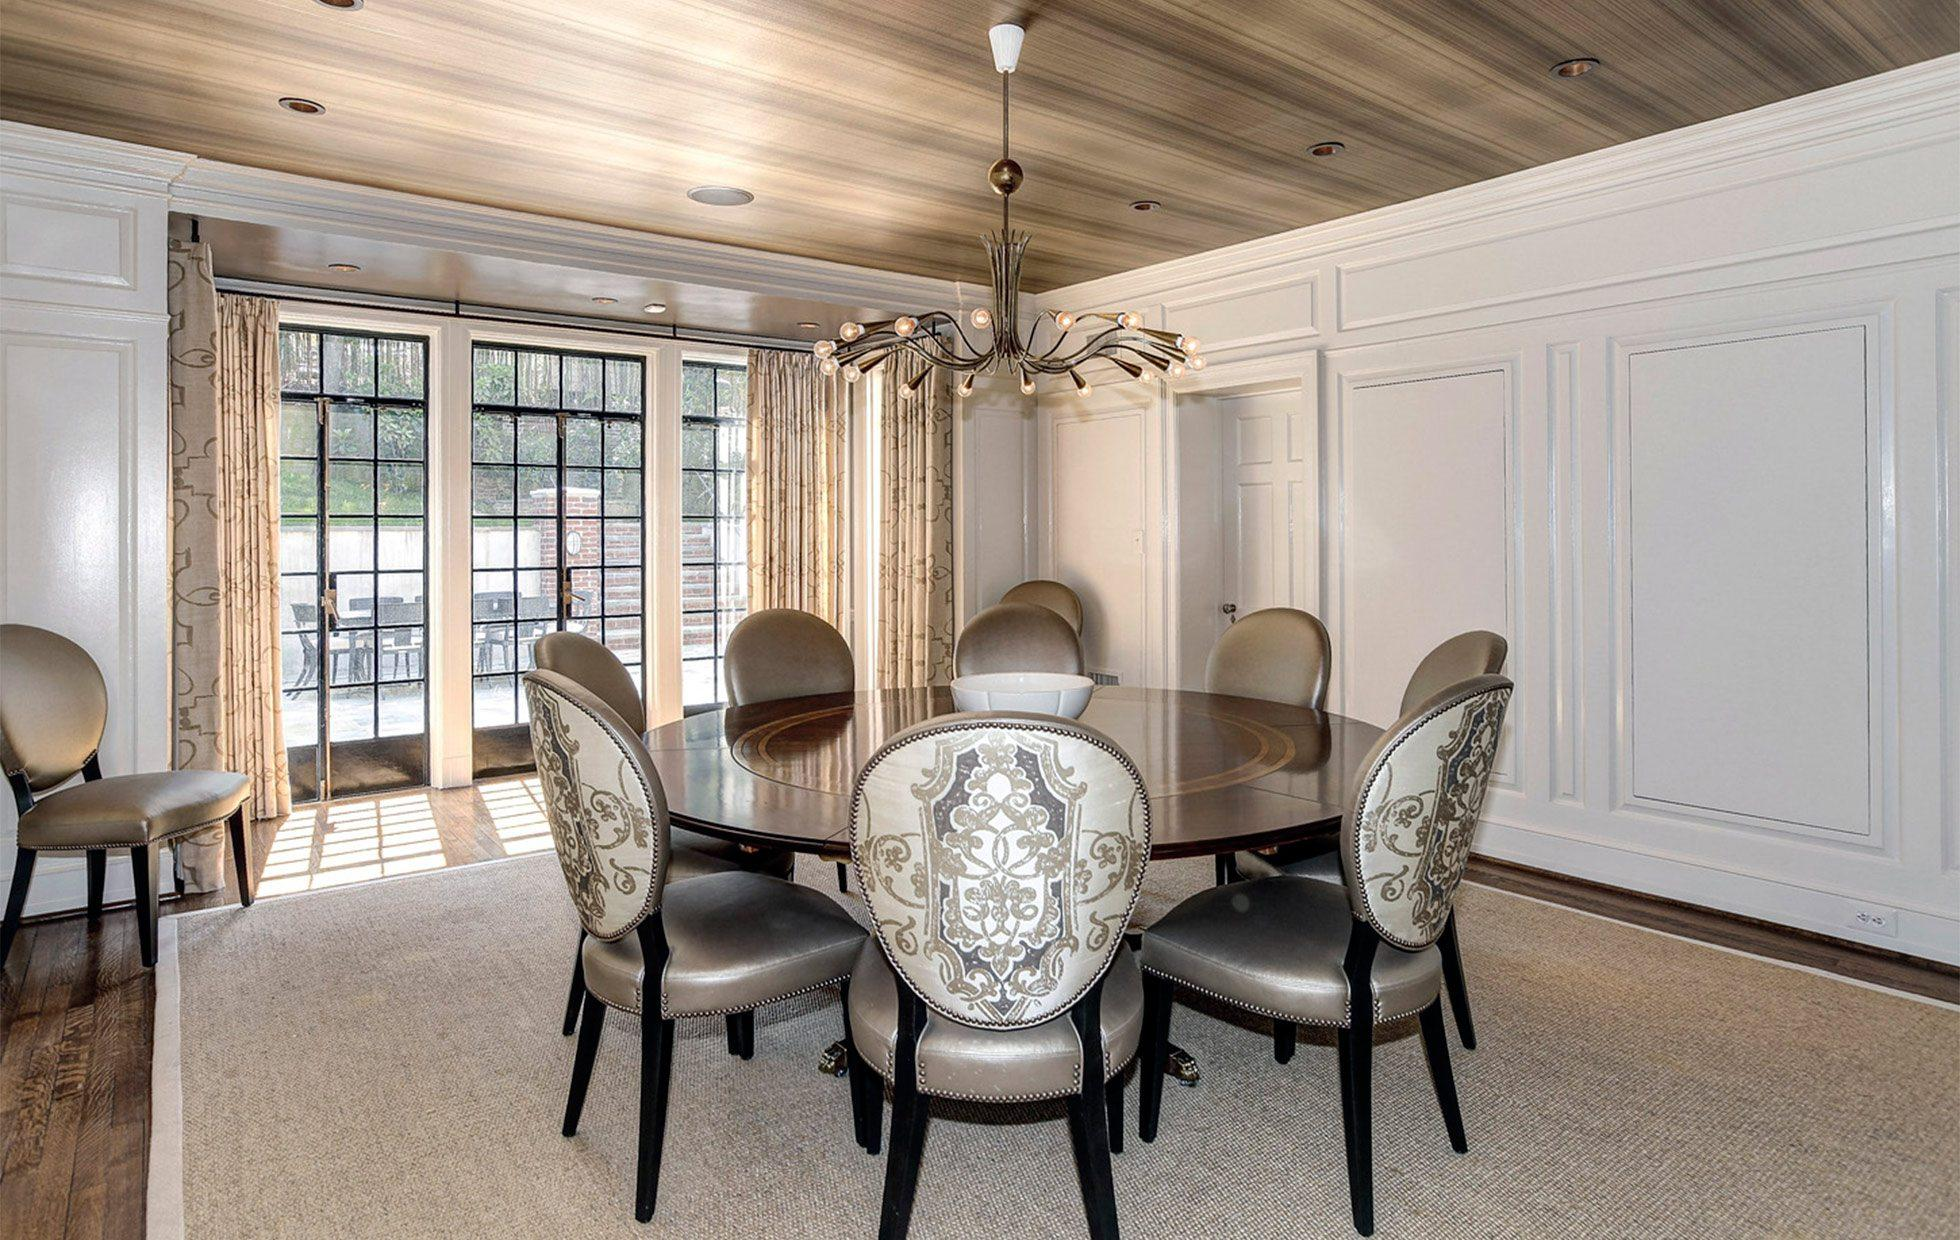 5881fea93a9932446-Belmont-Road-NW-Washington-DC-Obamas-New-Home-Formal-Dining-Room